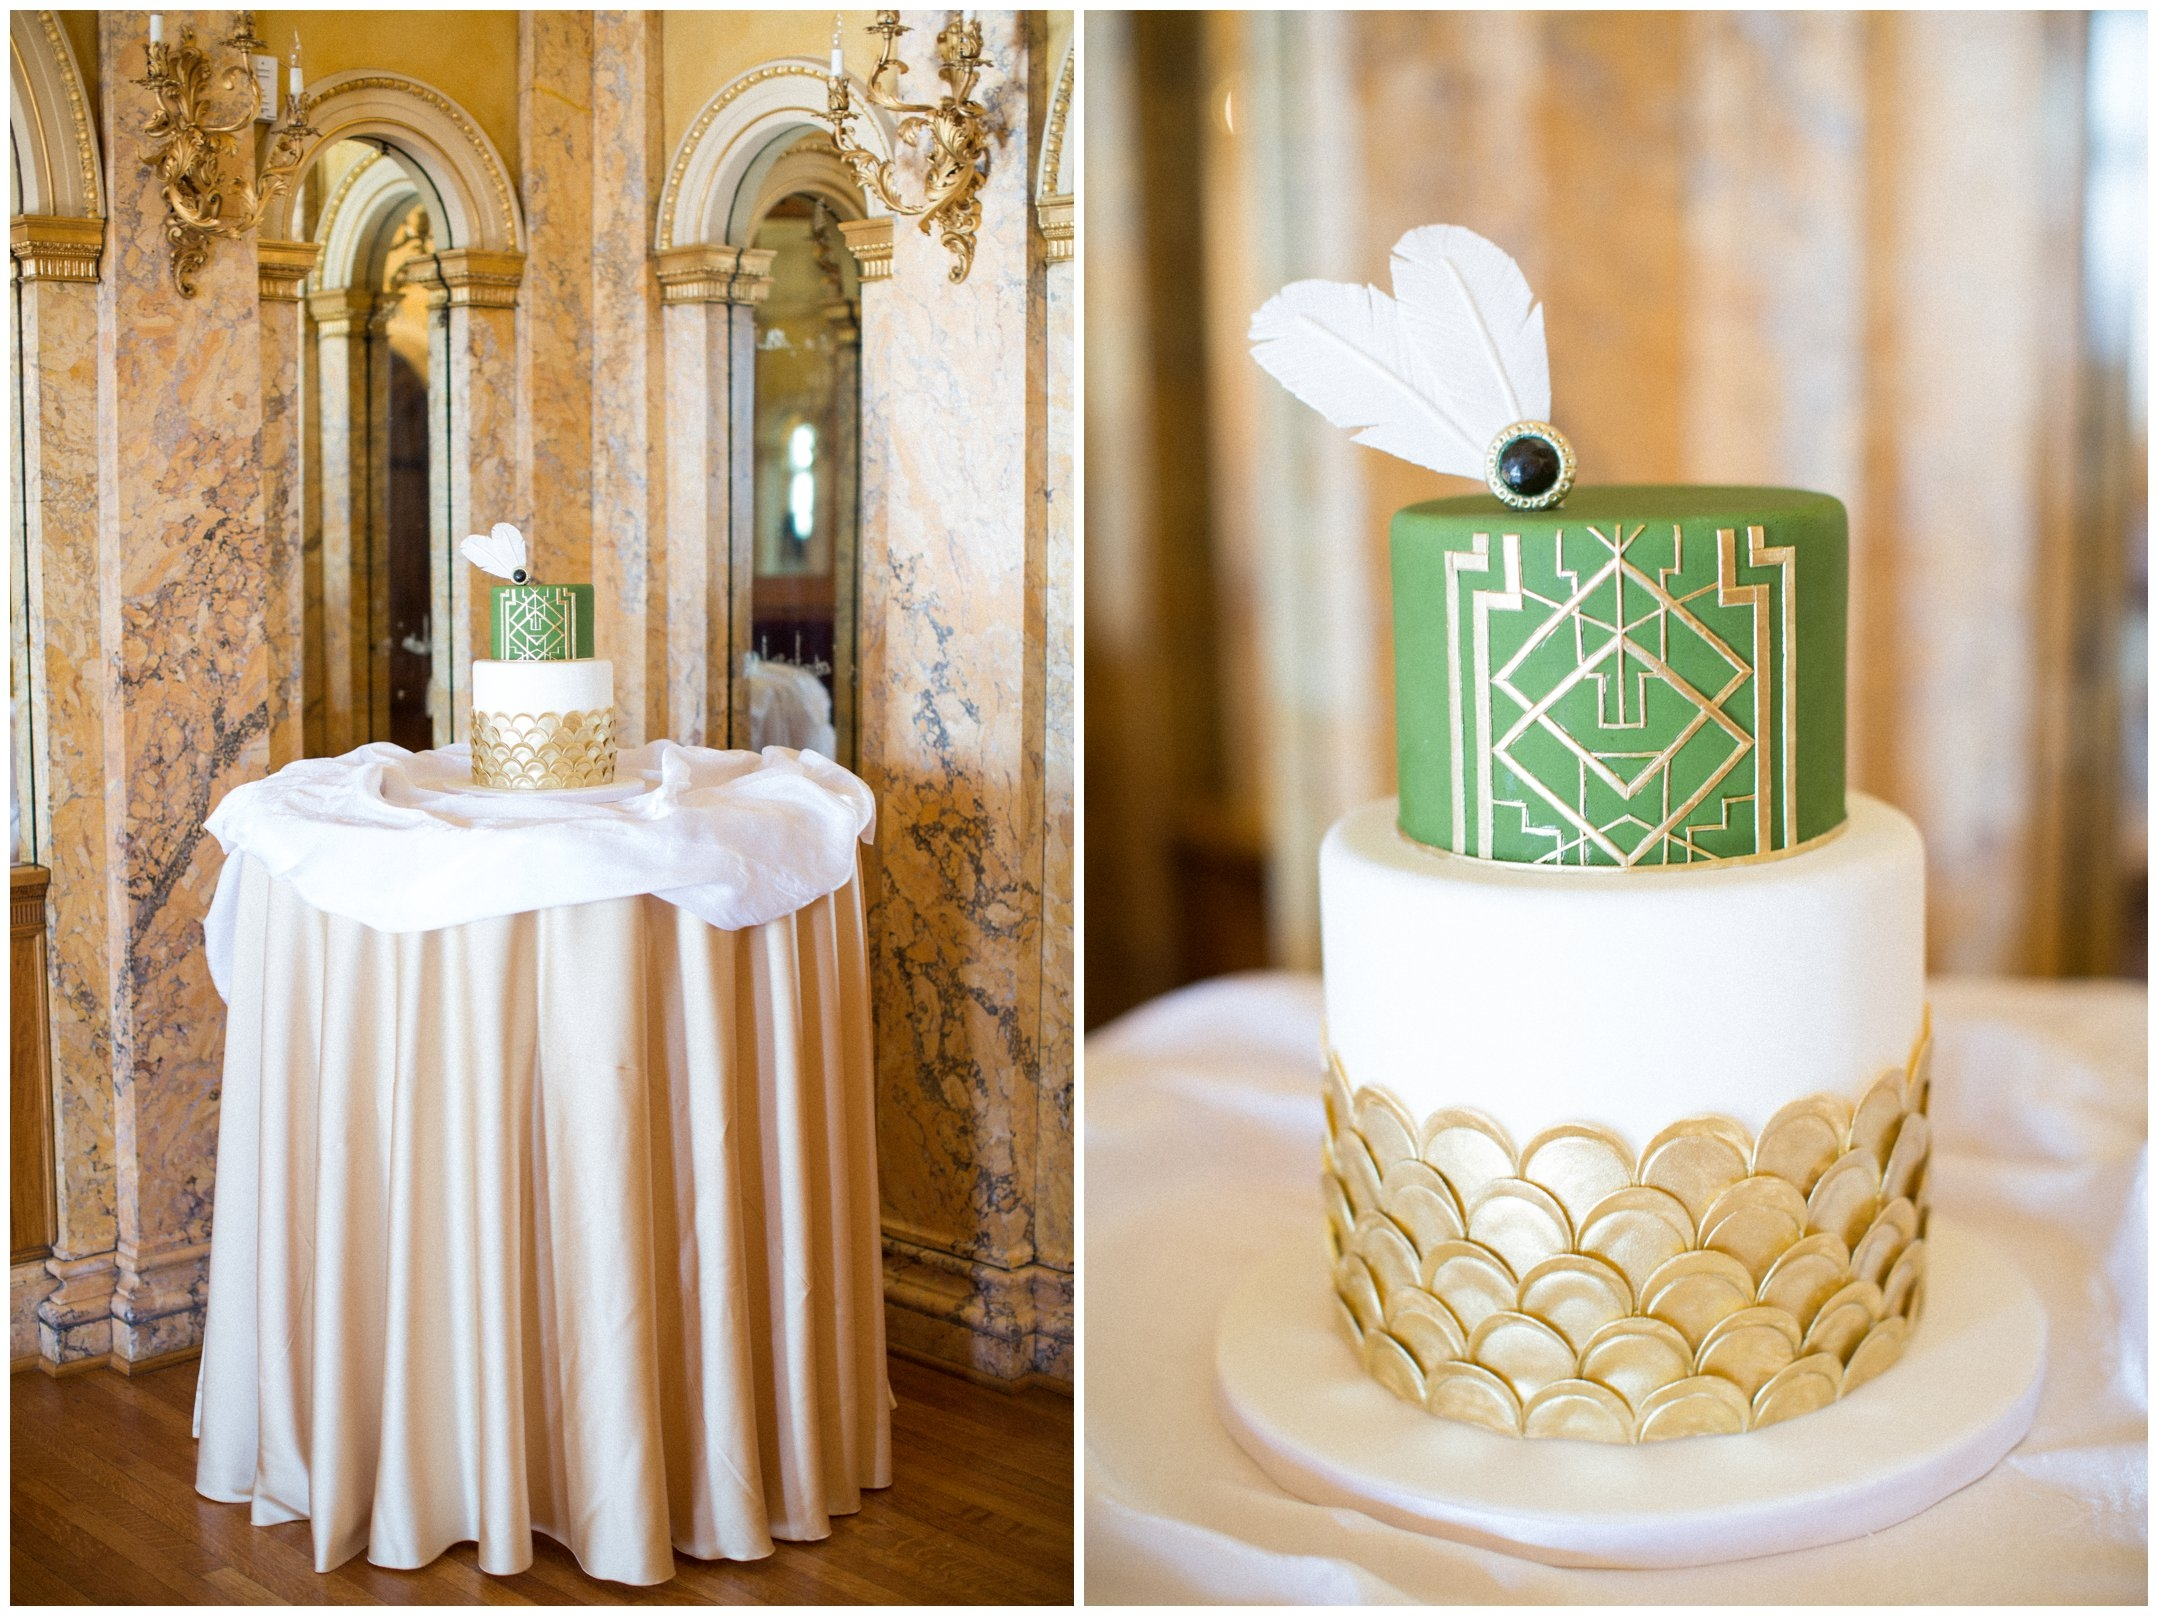 Great Gatsby Inspired Cake CakeCentral